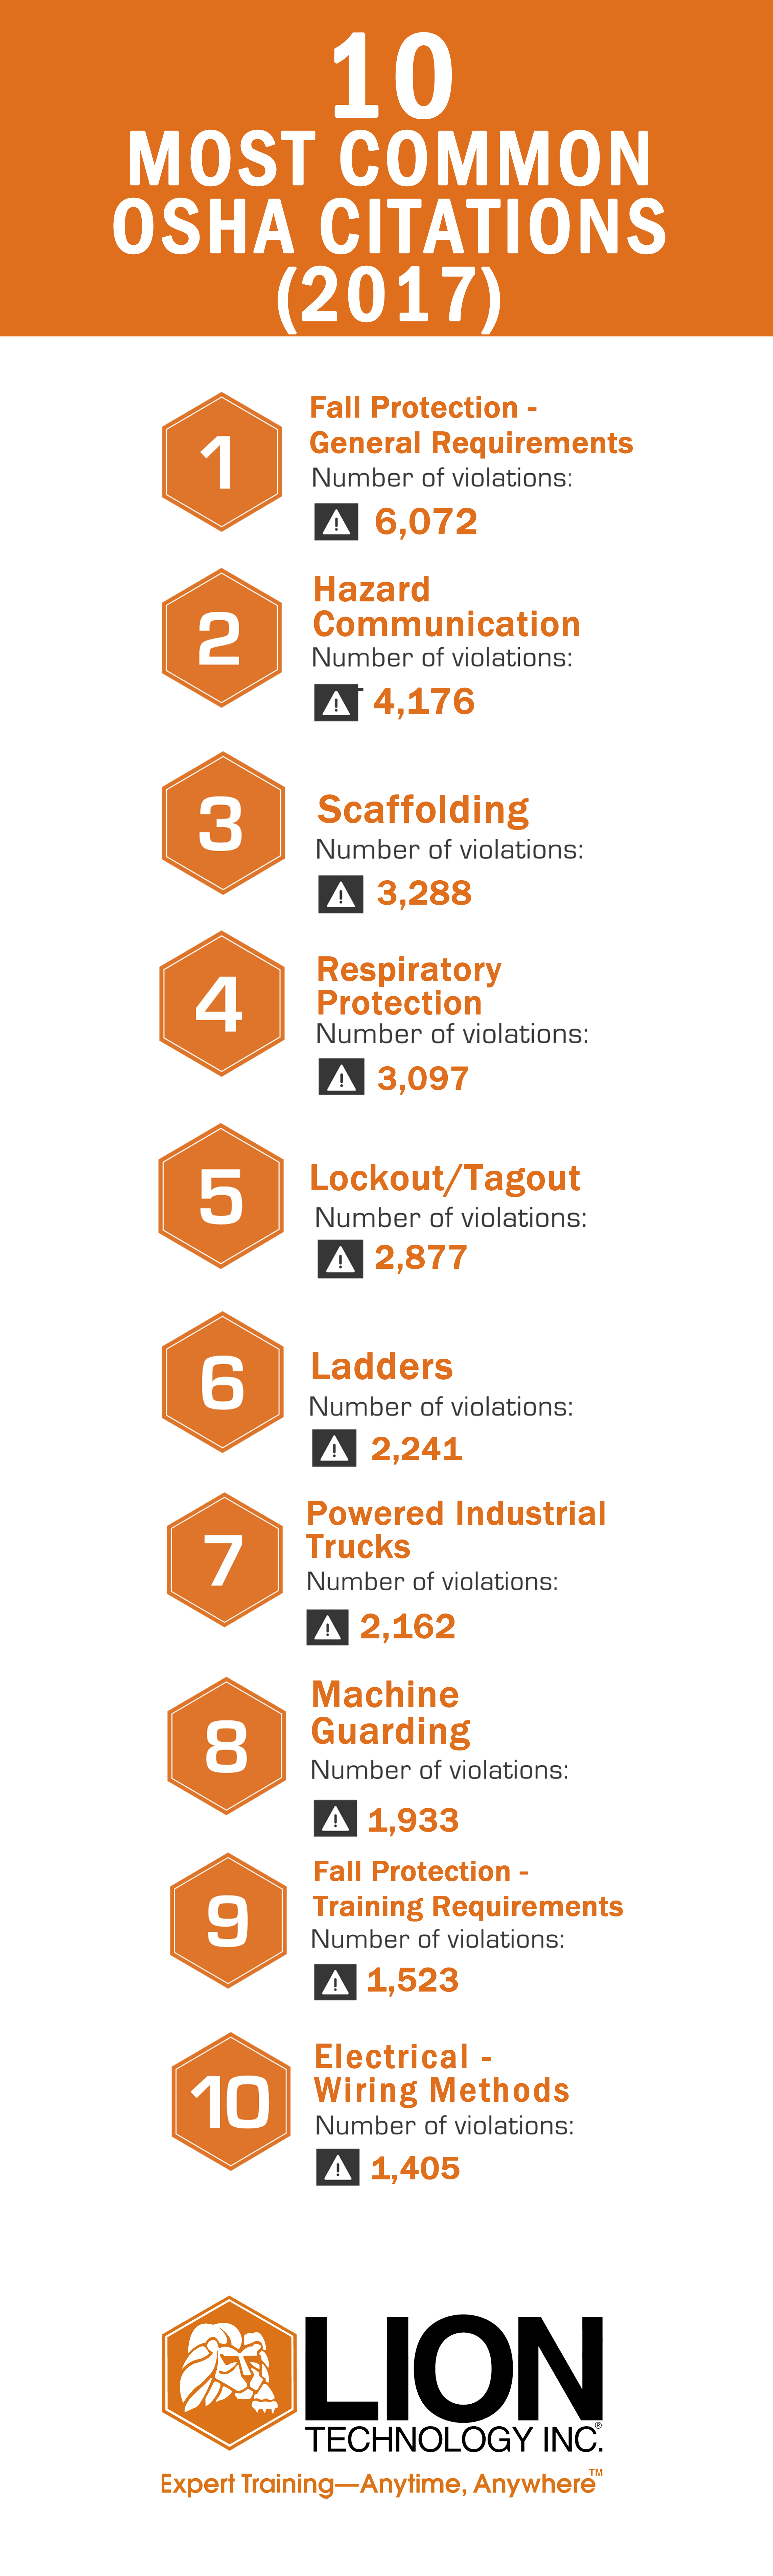 Violations Wiring Methods Wire Center Residential Osha Shares 2017 S Top 10 Safety Lion Technology Rh Com Electrical